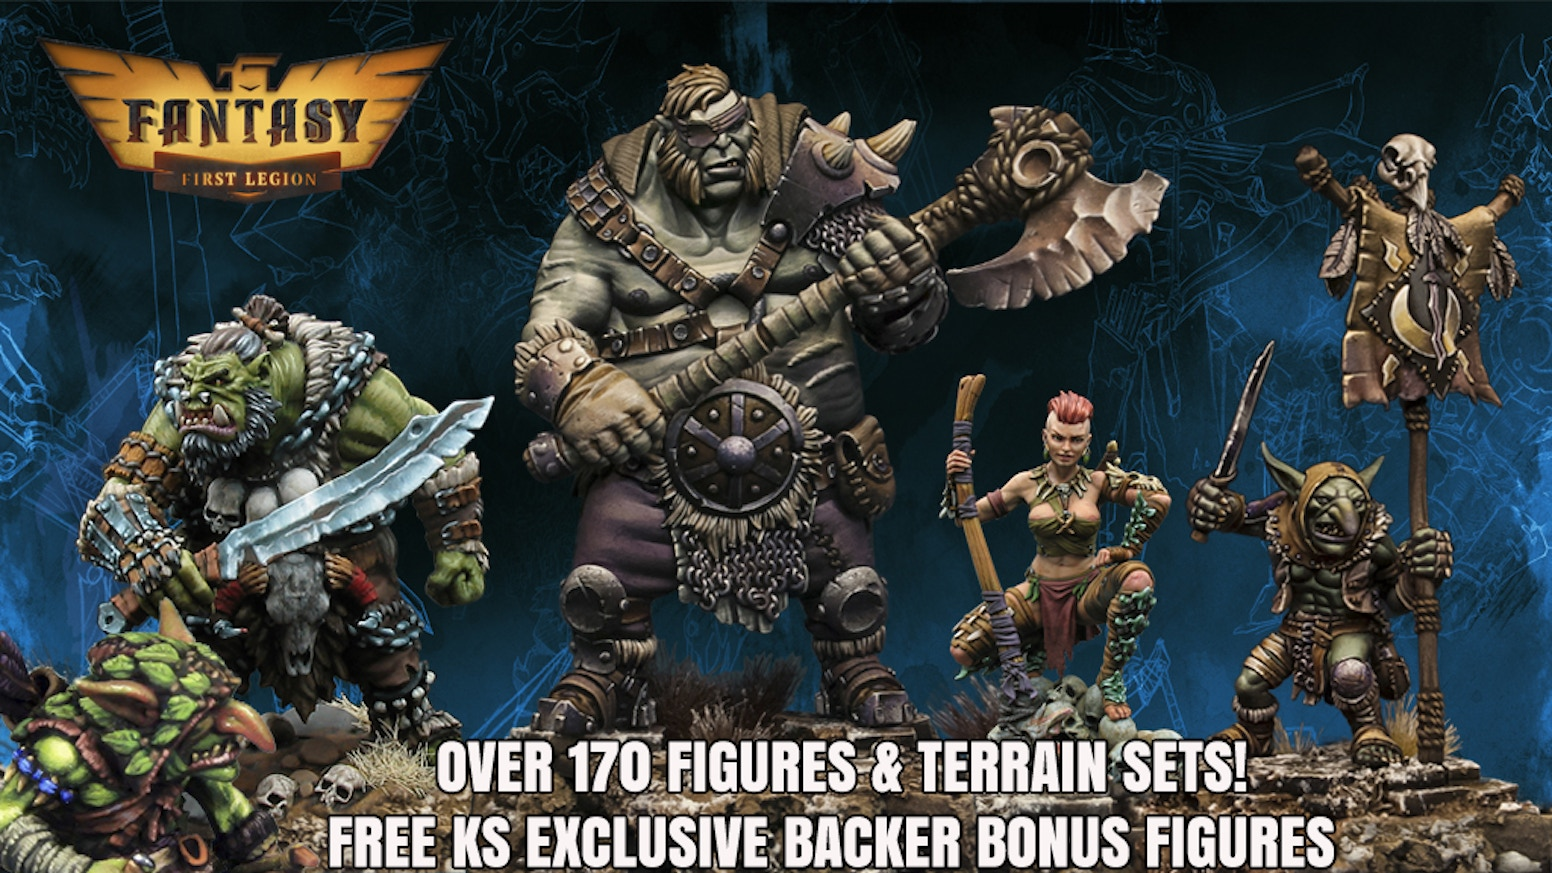 AMAZING 28MM Fantasy Miniatures.  Massive selection at incredible prices! Late Pledging Now Open!